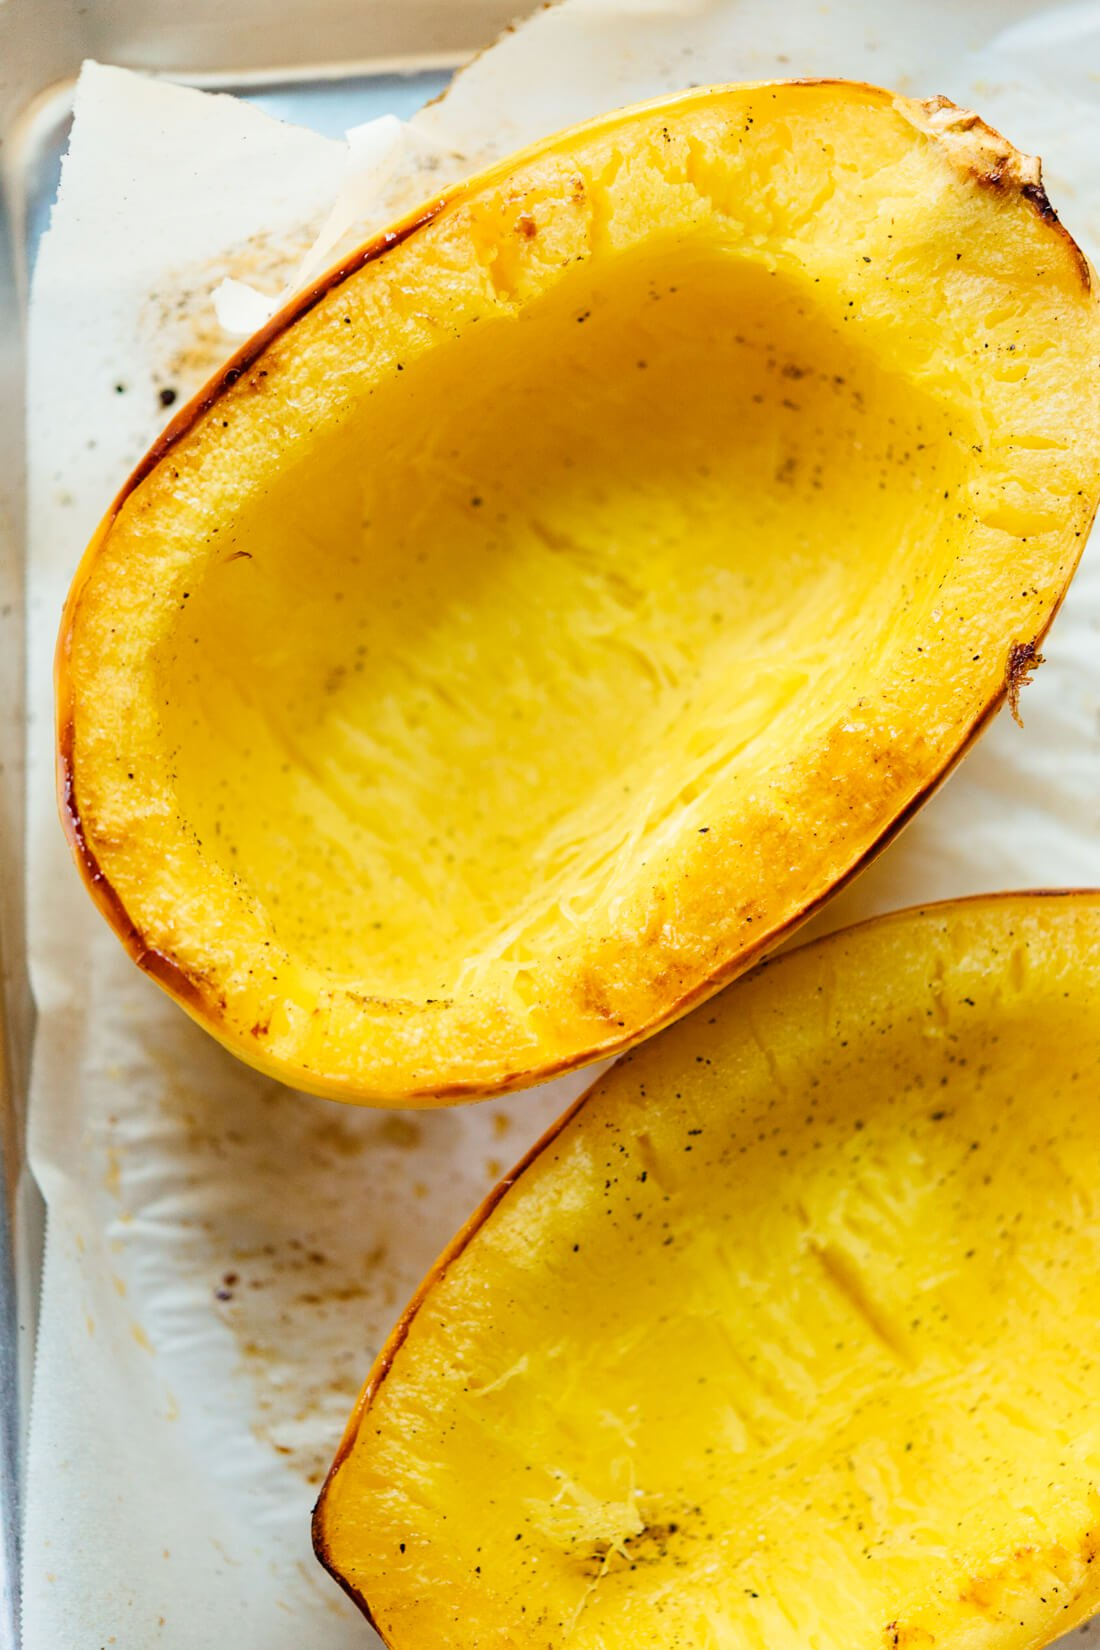 How long to roast squash